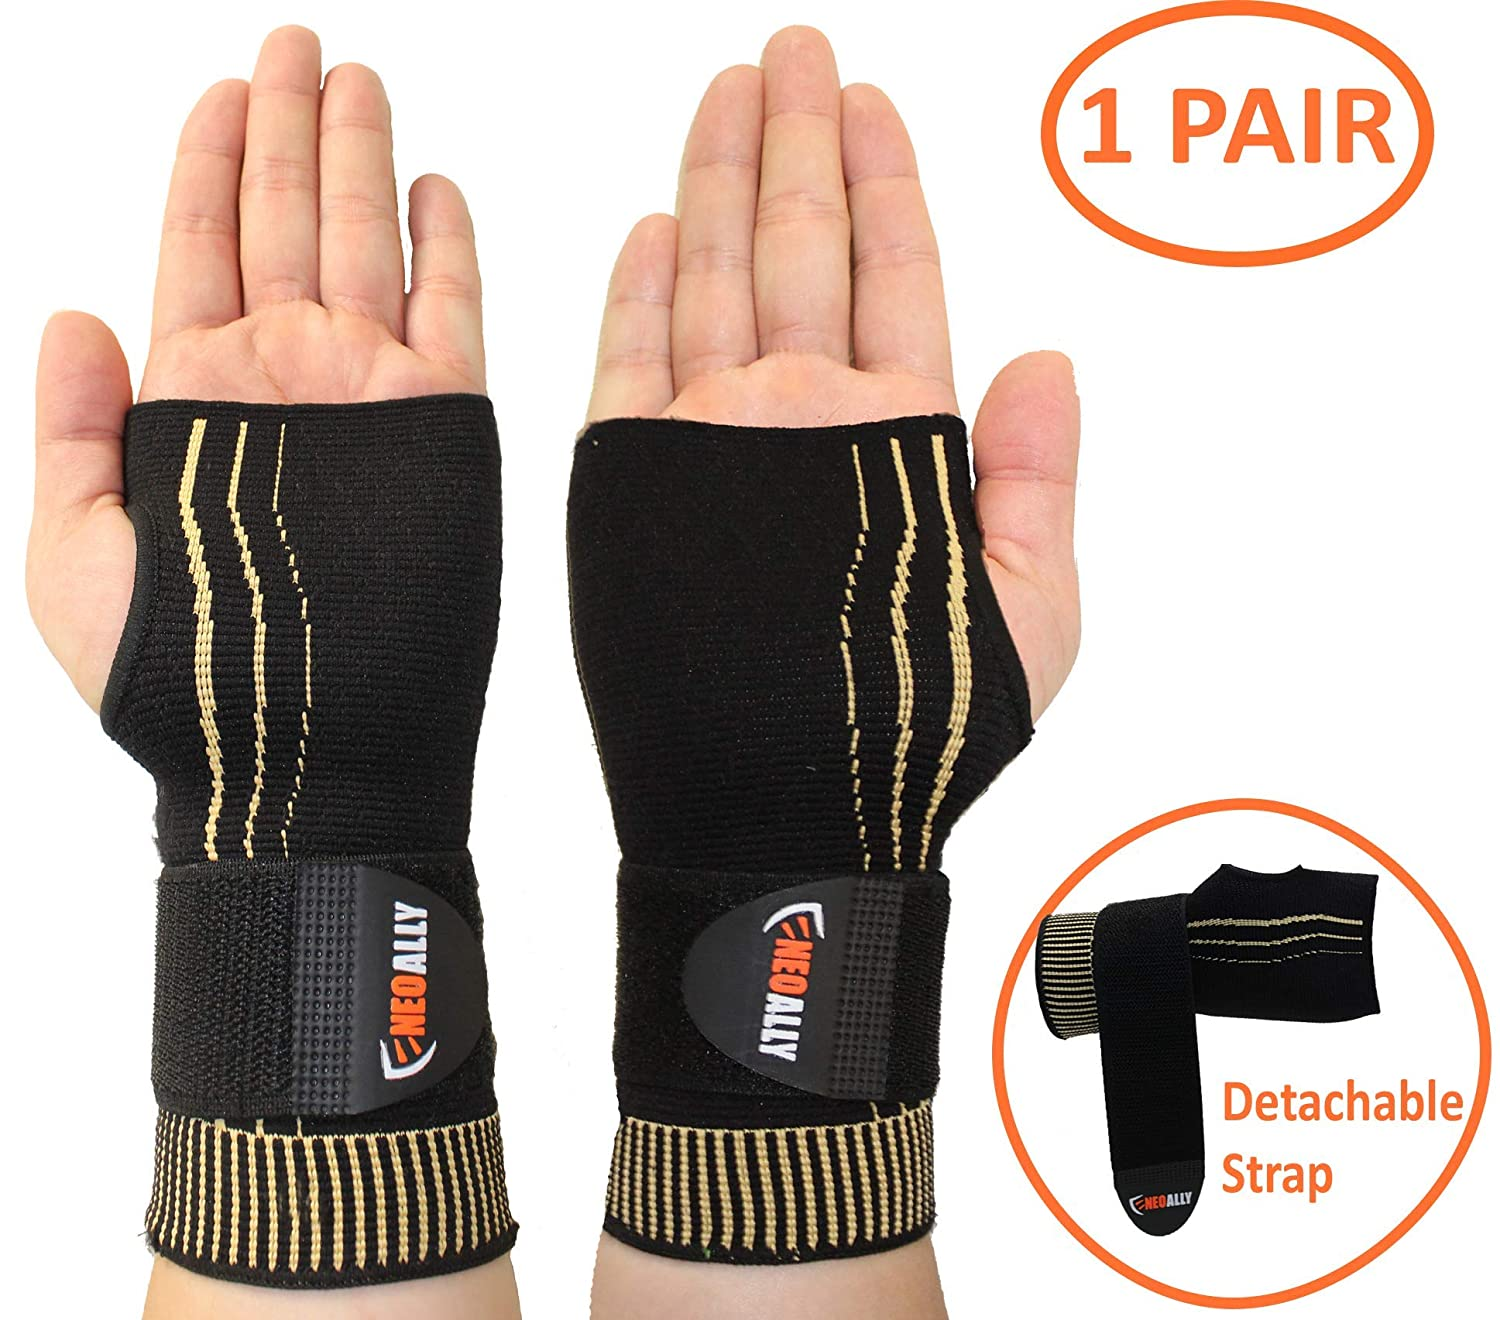 f9963a7b14 NeoAlly Copper Wrist Compression Sleeve - Carpal Tunnel Gloves with  Adjustable Strap for Extra Support in Carpal Tunnel, Arthritis, Tendonitis,  Bursitis and ...